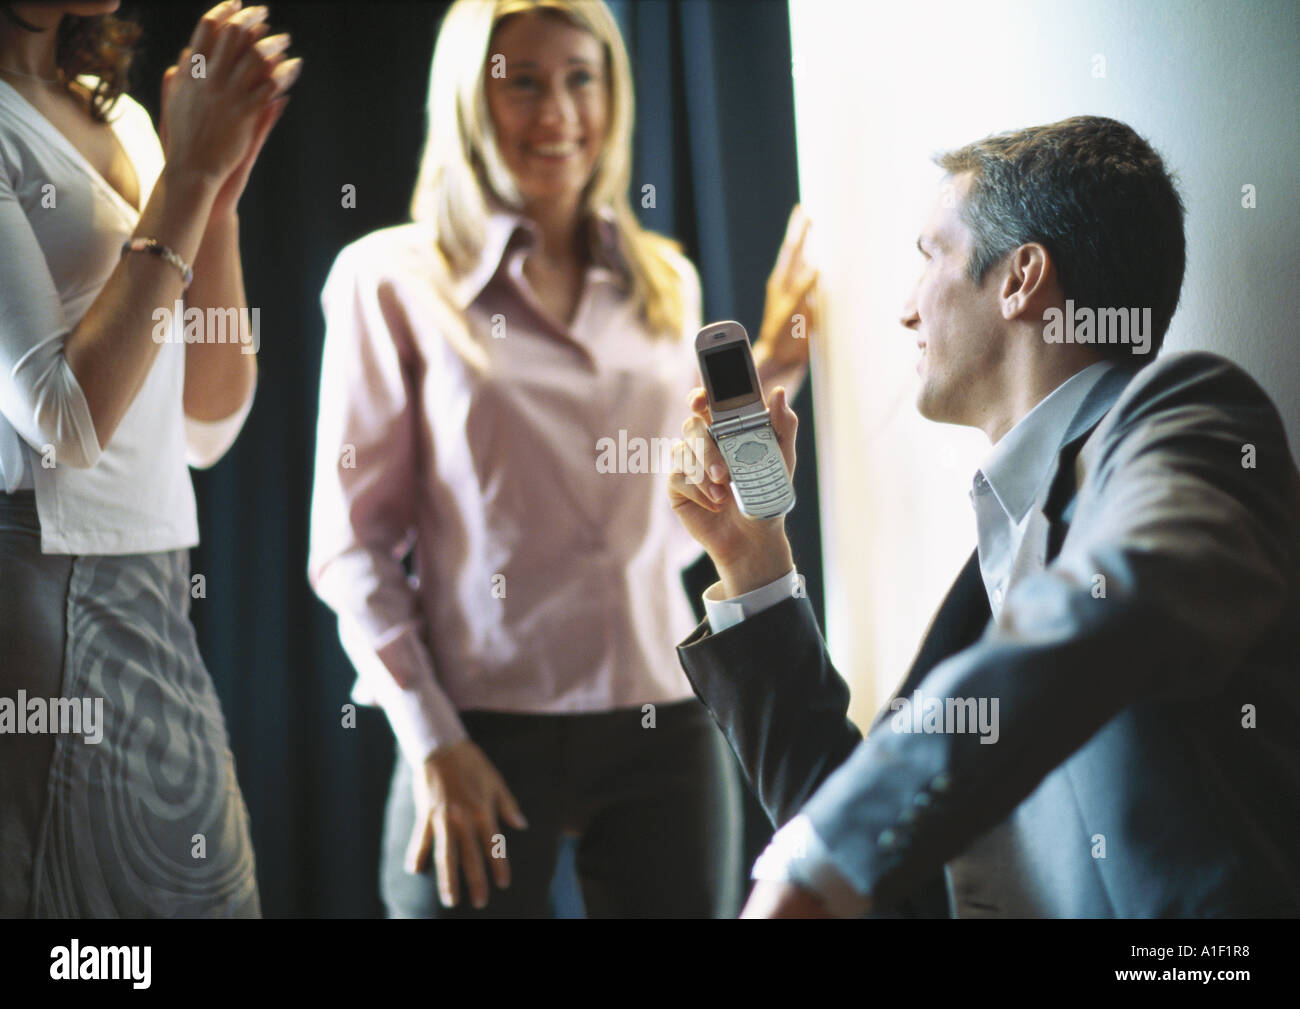 Businessman holding up cellphone, female colleagues smiling and clapping - Stock Image